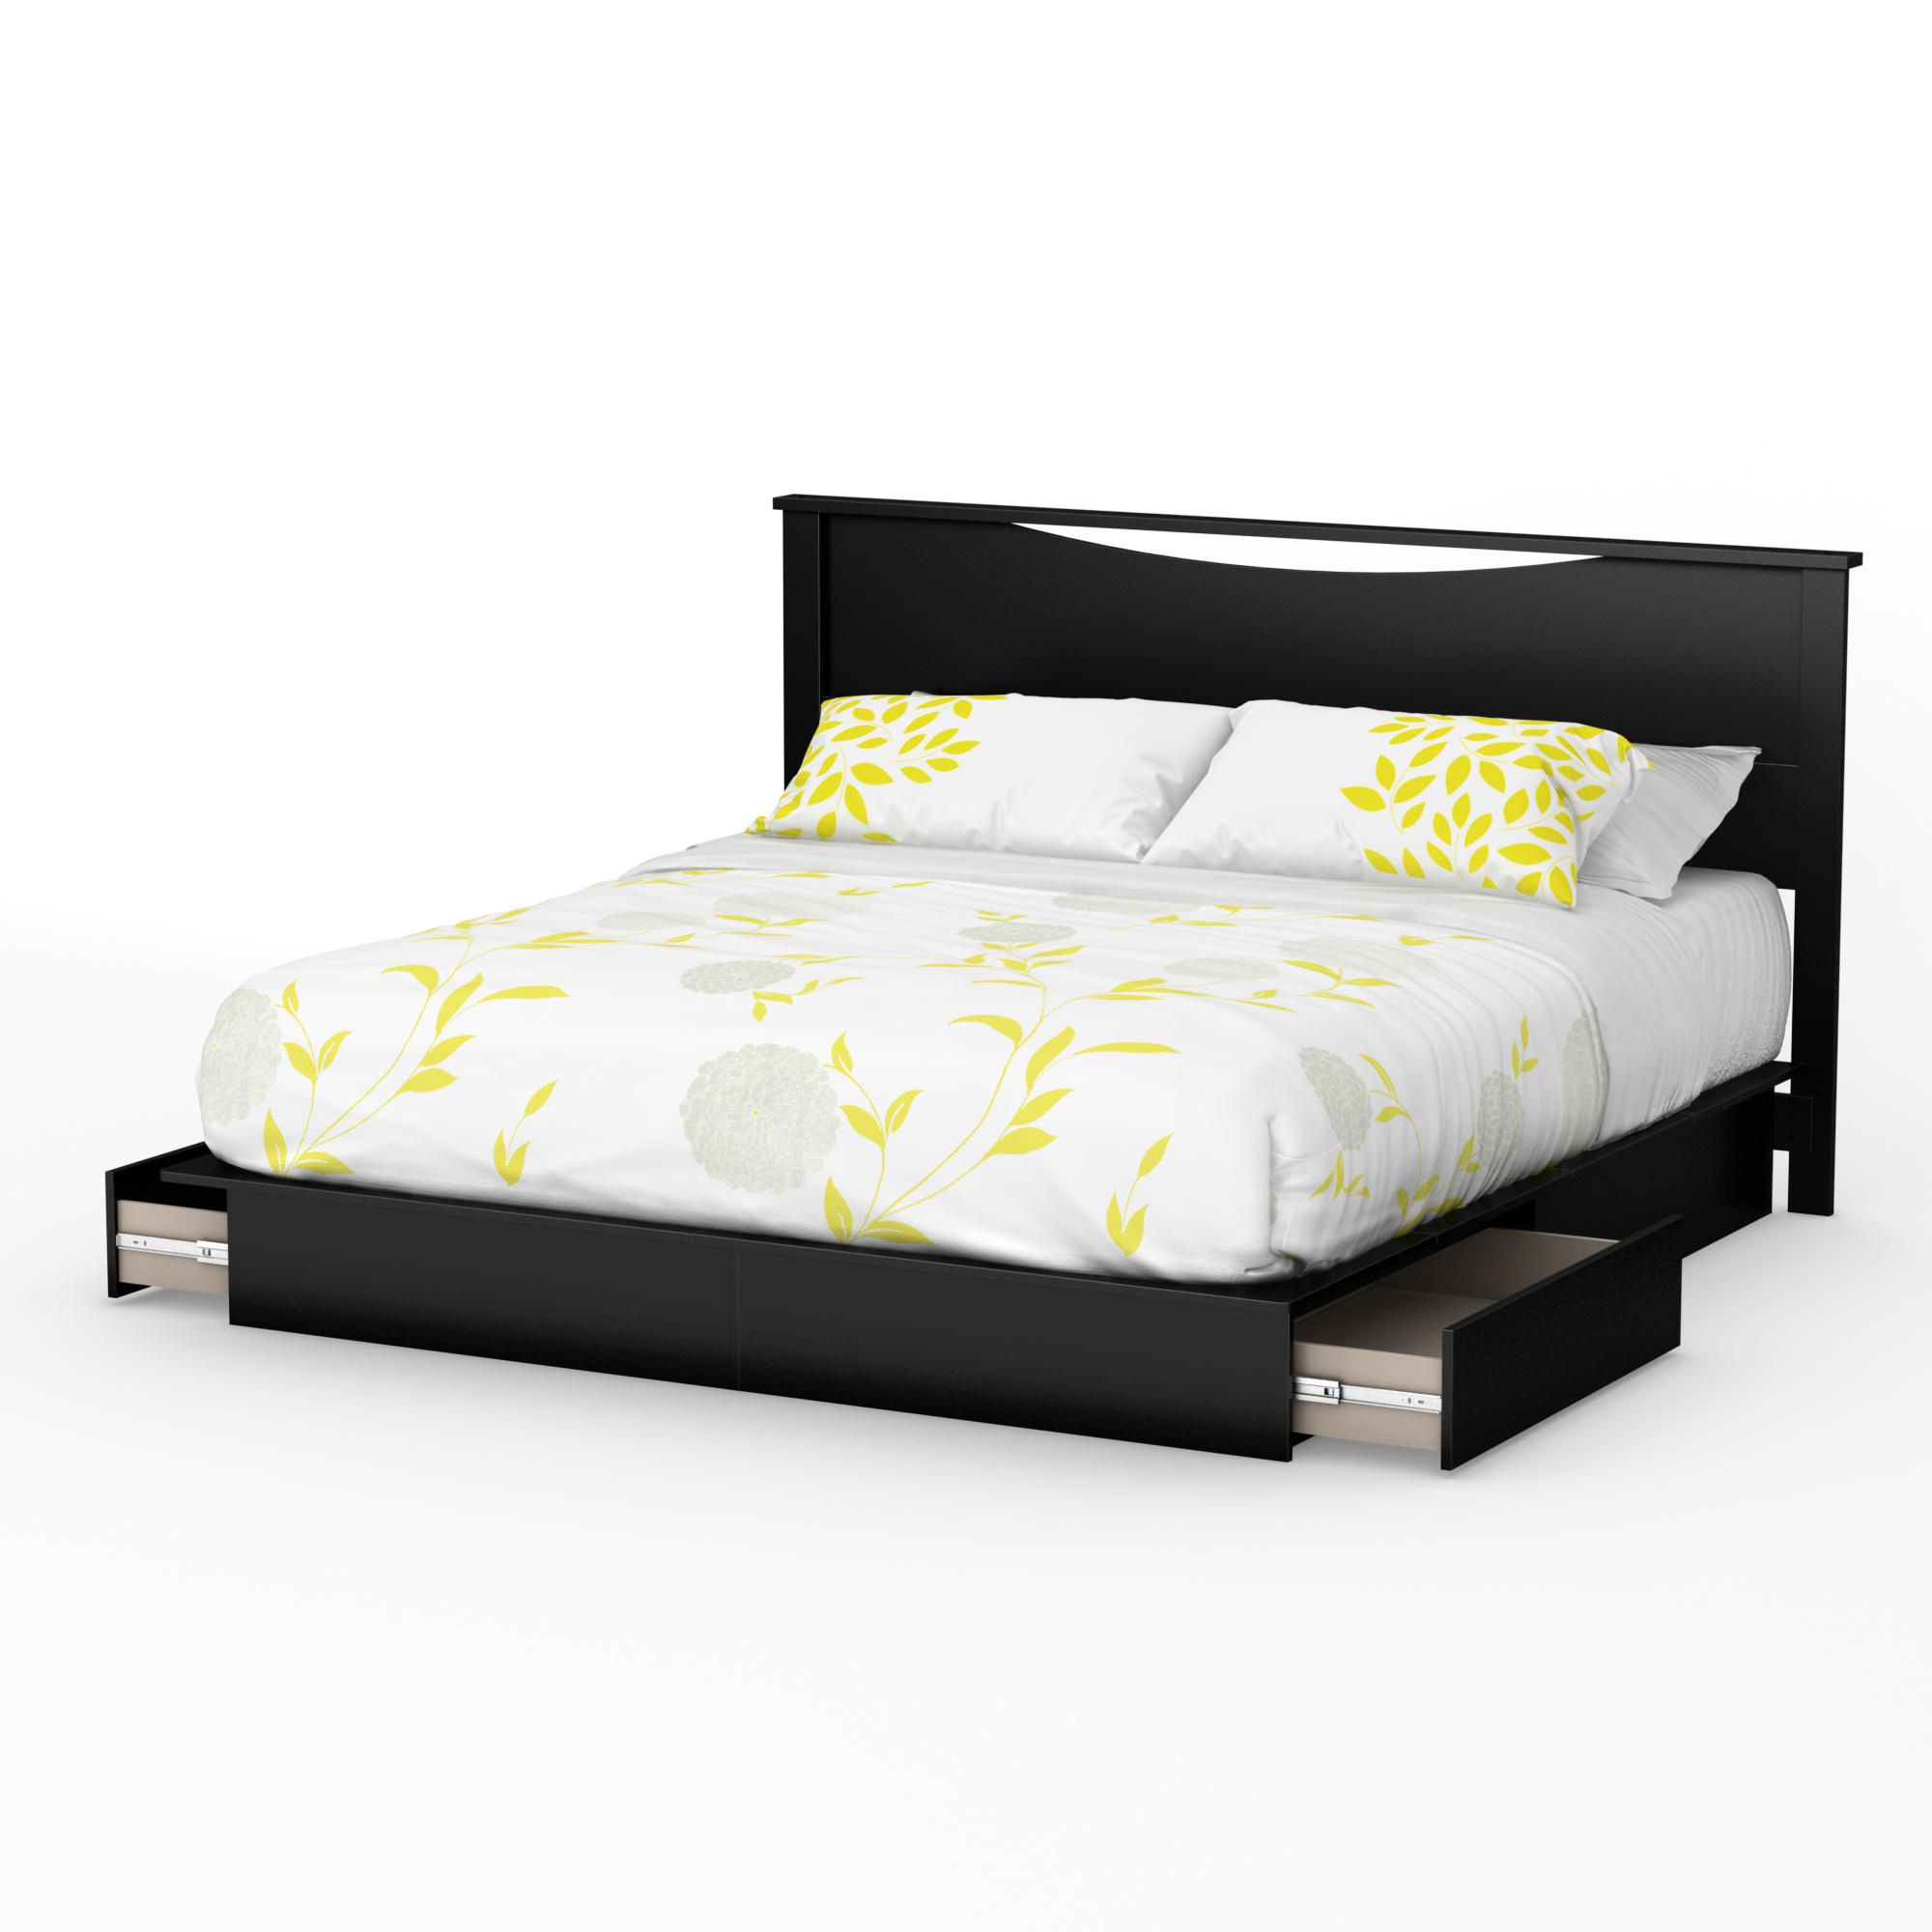 south shore soho collection king platform bed () with drawers  - south shore soho collection king platform bed () with drawers walmartca